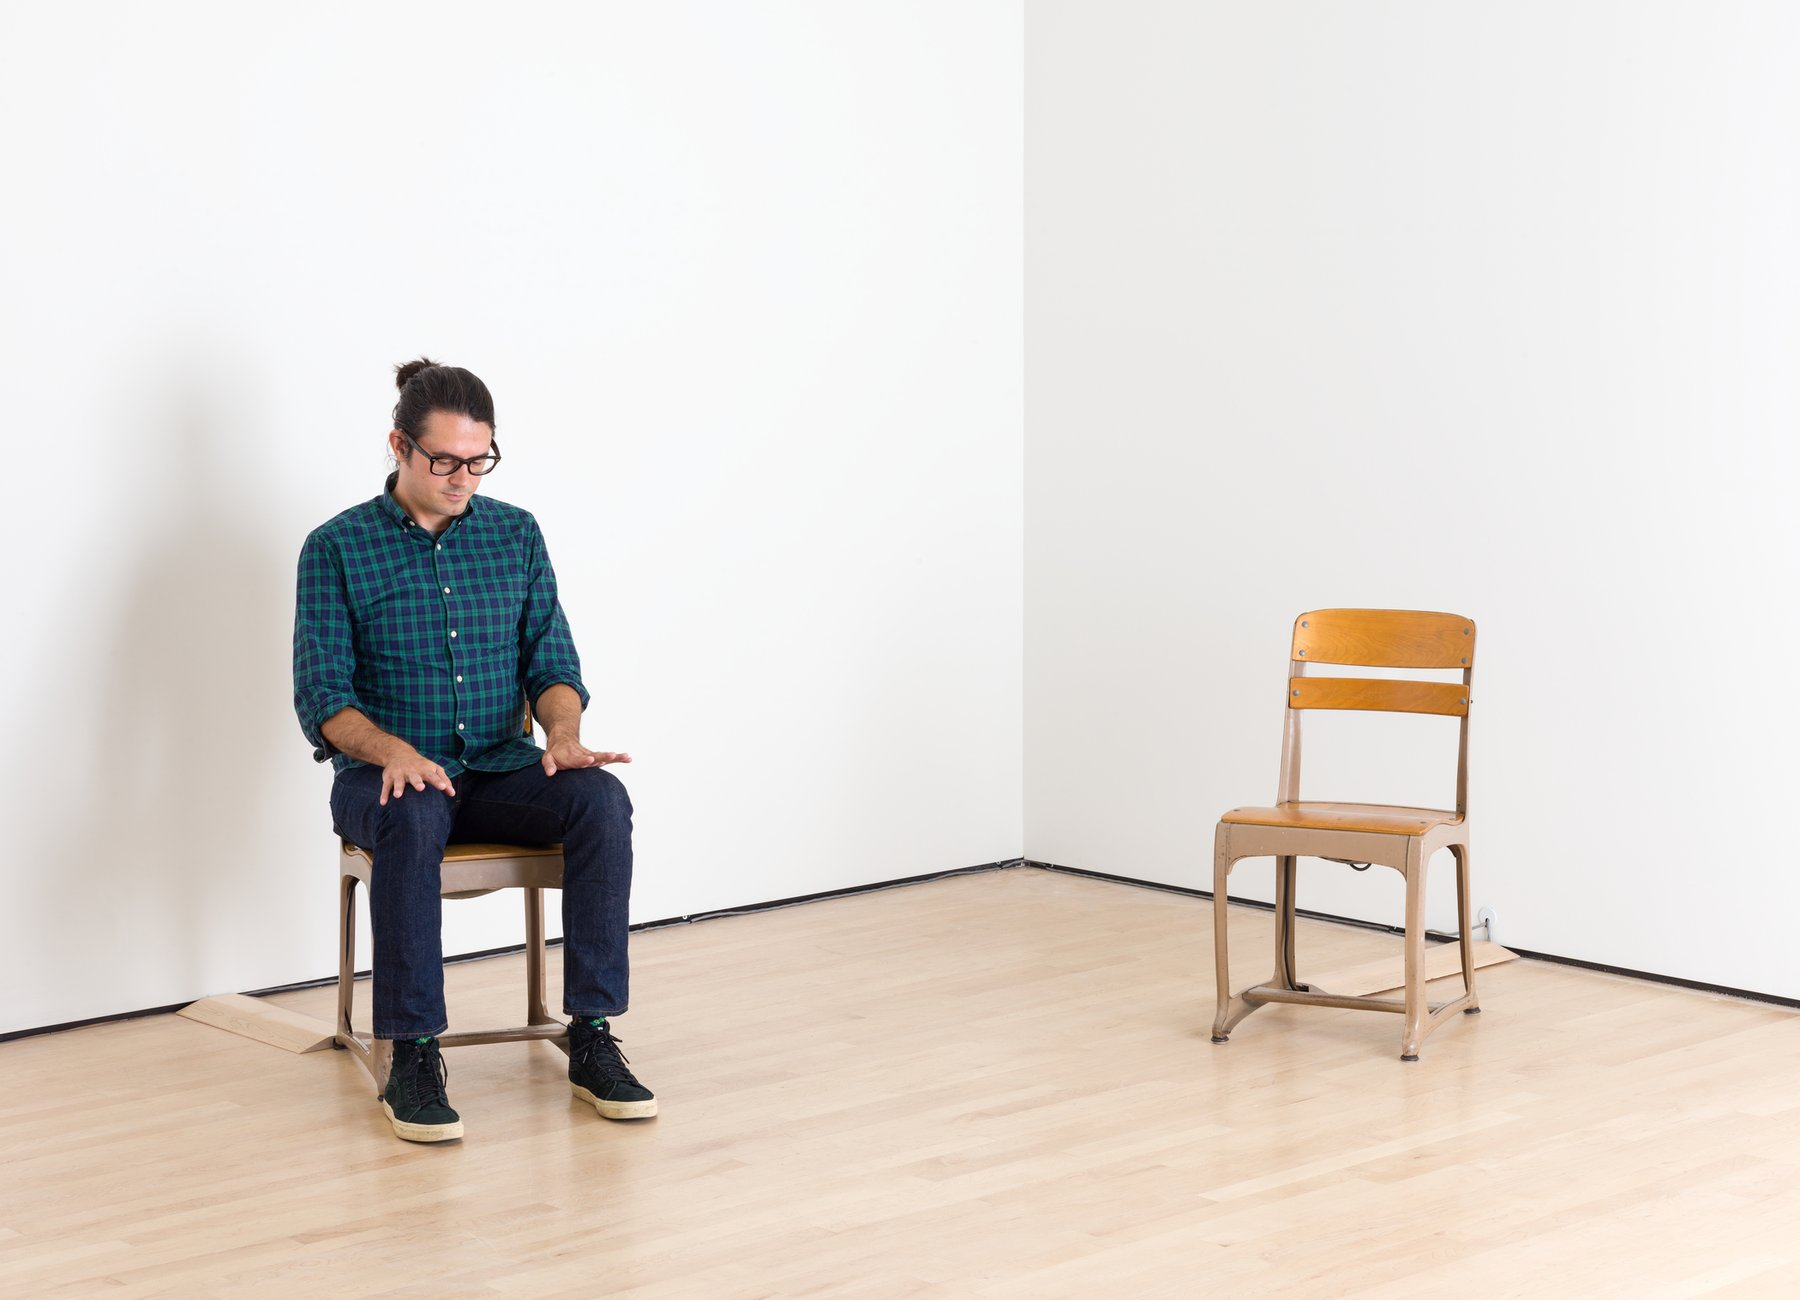 A Caucasian man with dark hair and glasses sits on one of two school chairs, Tcherepnin, Soundtracks